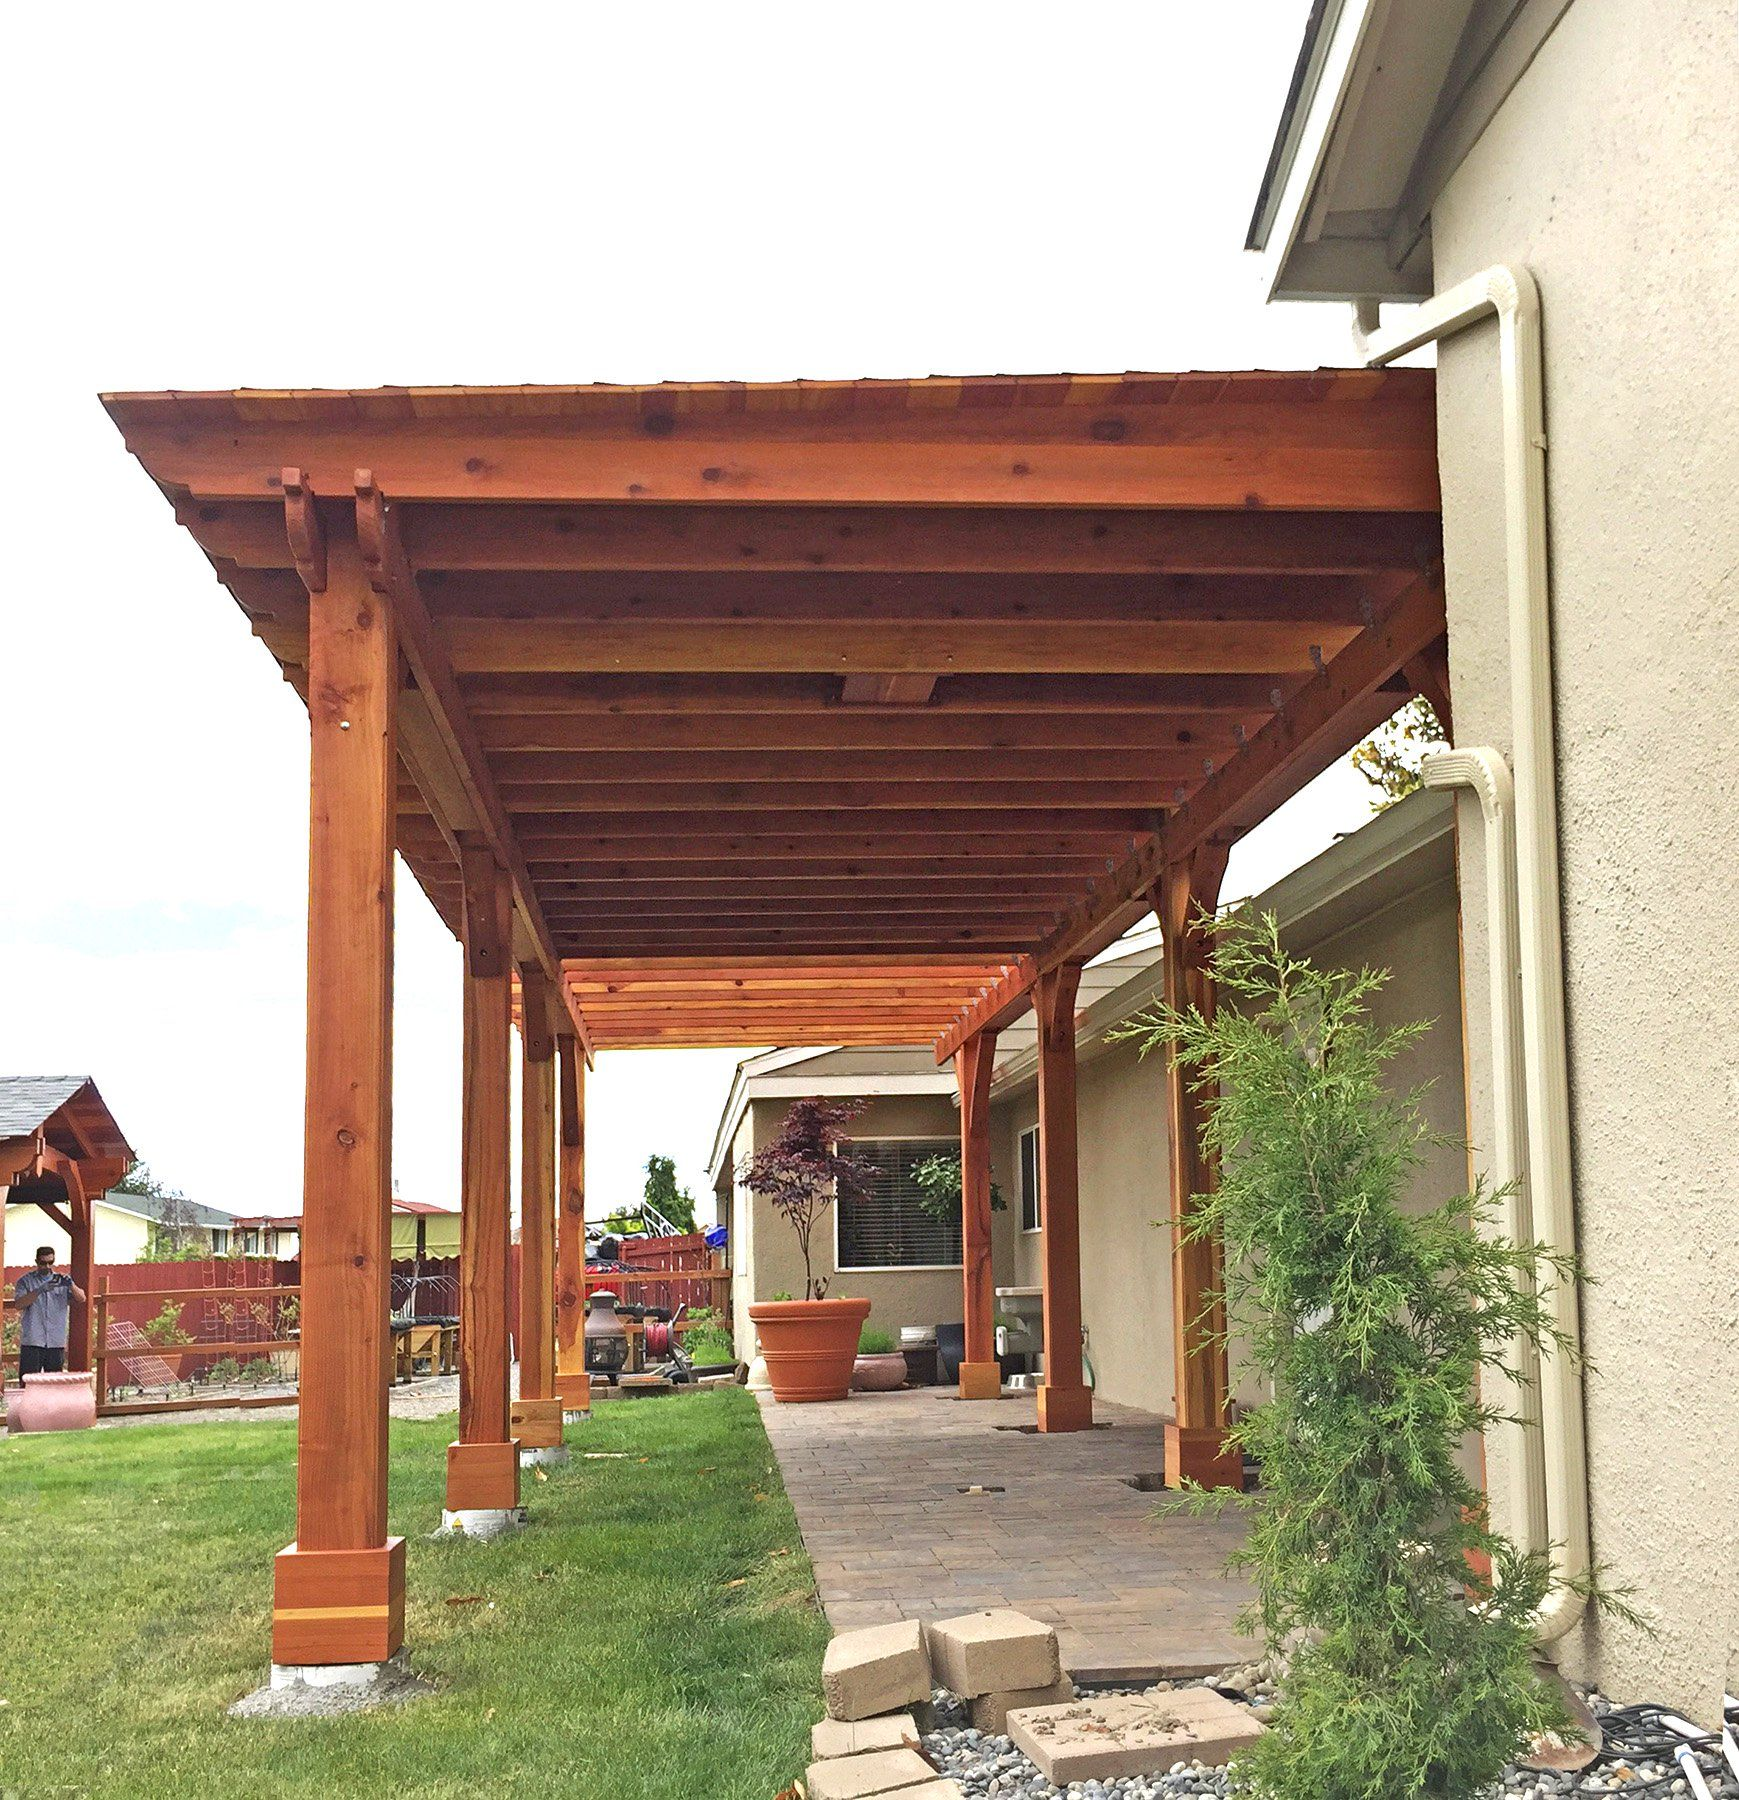 custom shed pavilion options 12 x 24 redwood one ceiling fan base electrical wiring trim kit for 1 post gale wind anchors for 8 posts  [ 1739 x 1800 Pixel ]